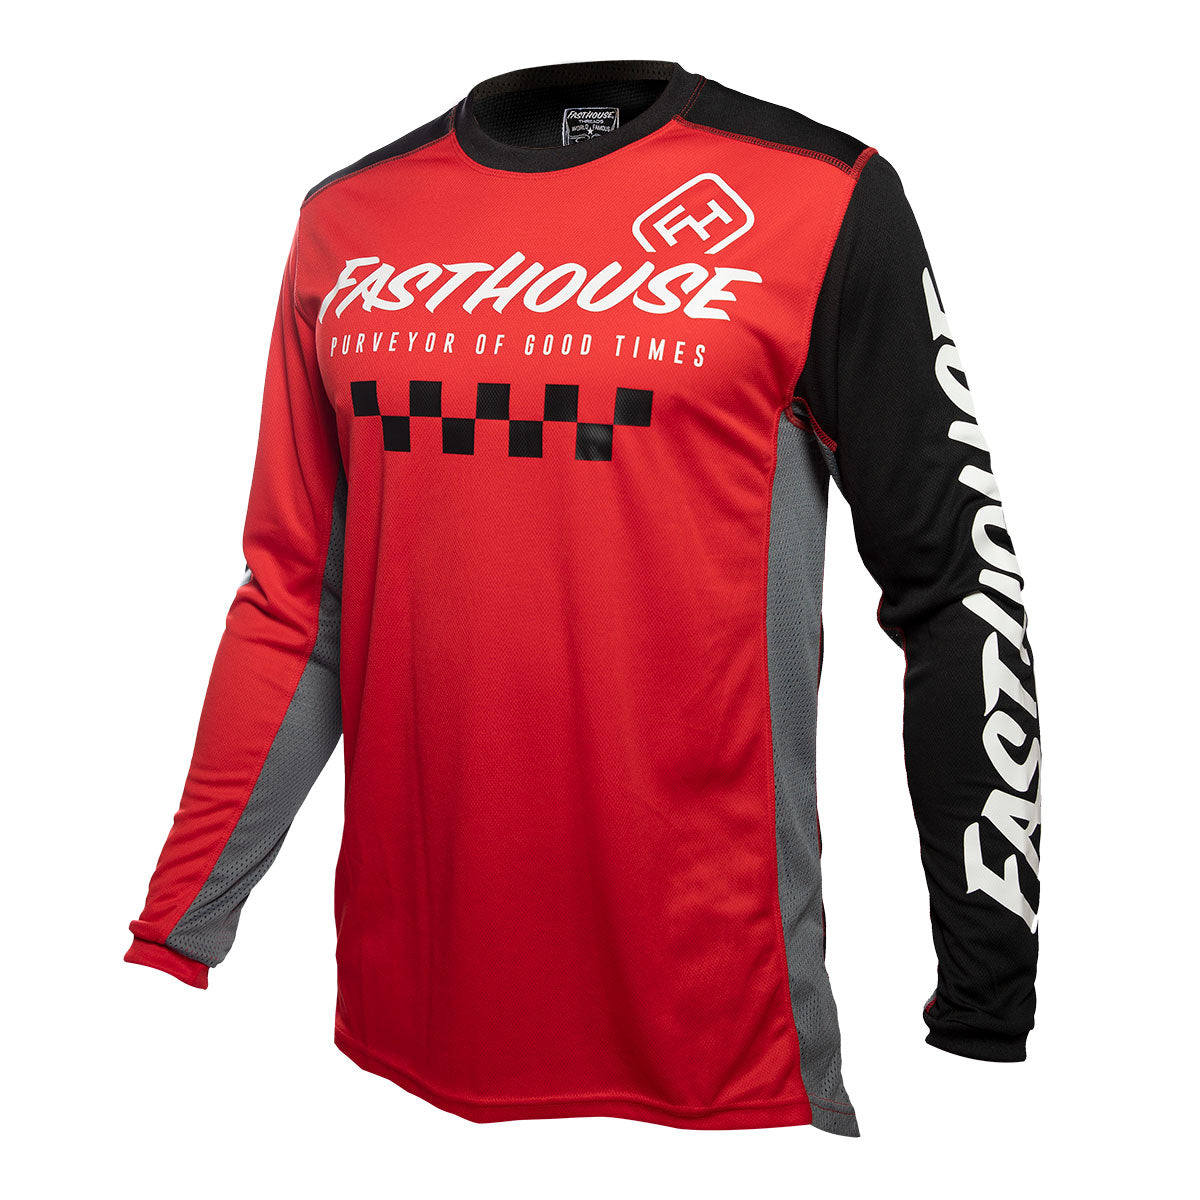 Fasthouse - Rally Jersey - Red/Black